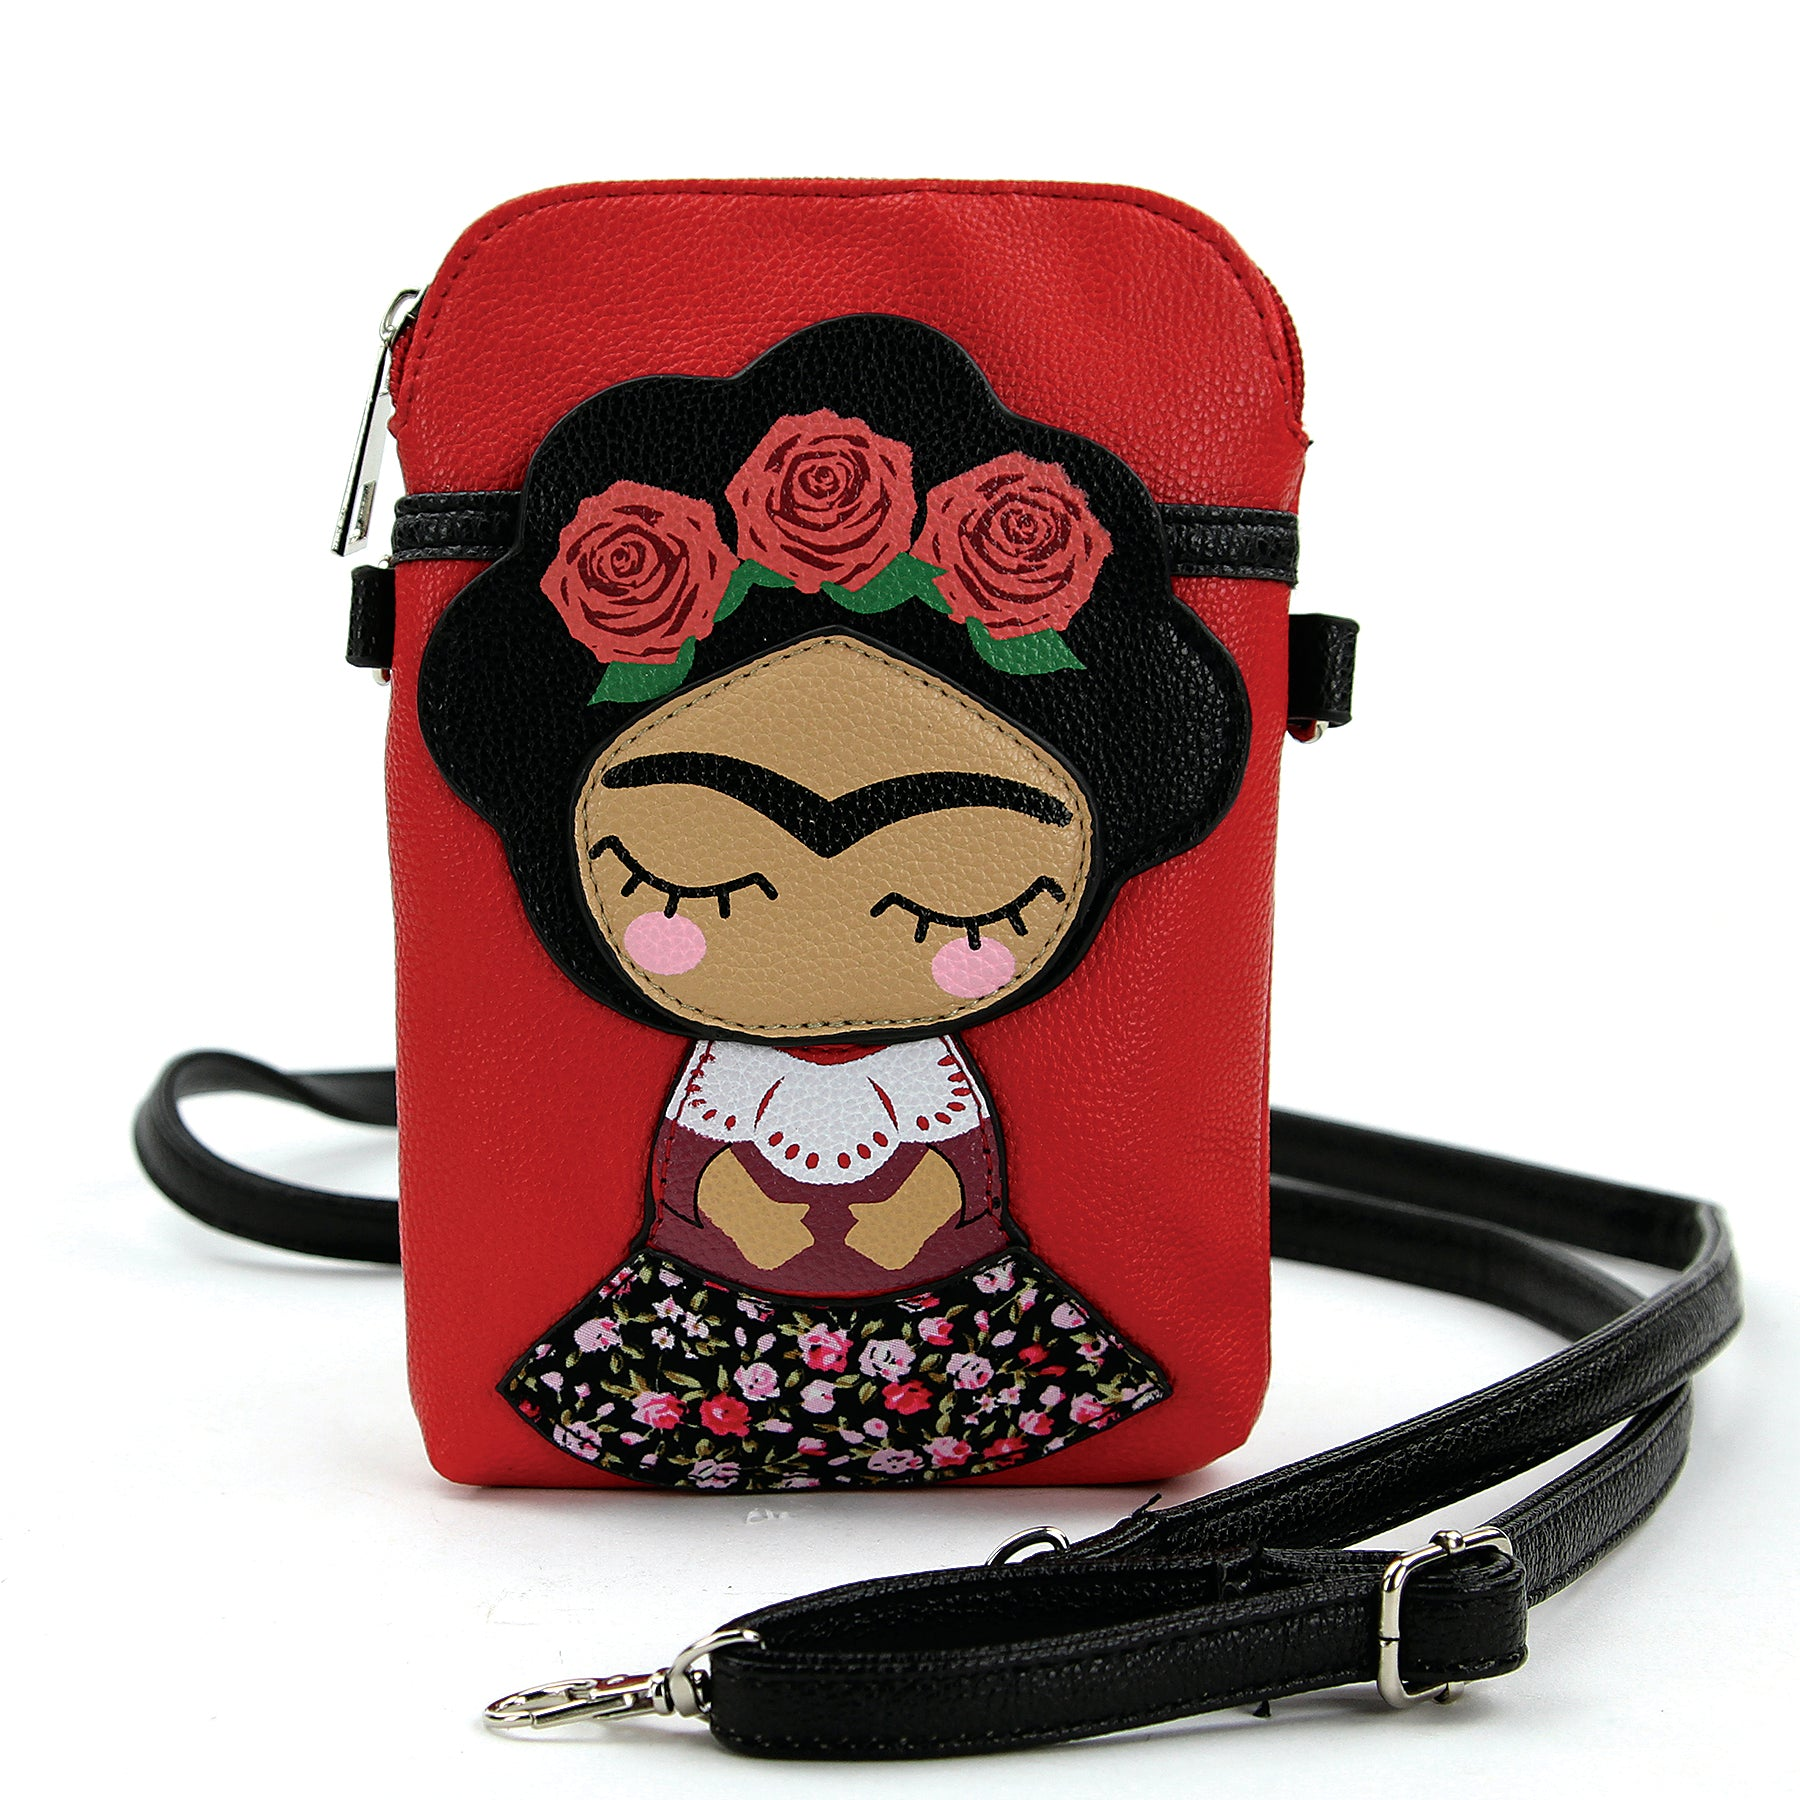 Rose Head Wreath Unibrow Girl Crossbody Pouch in Vinyl front view